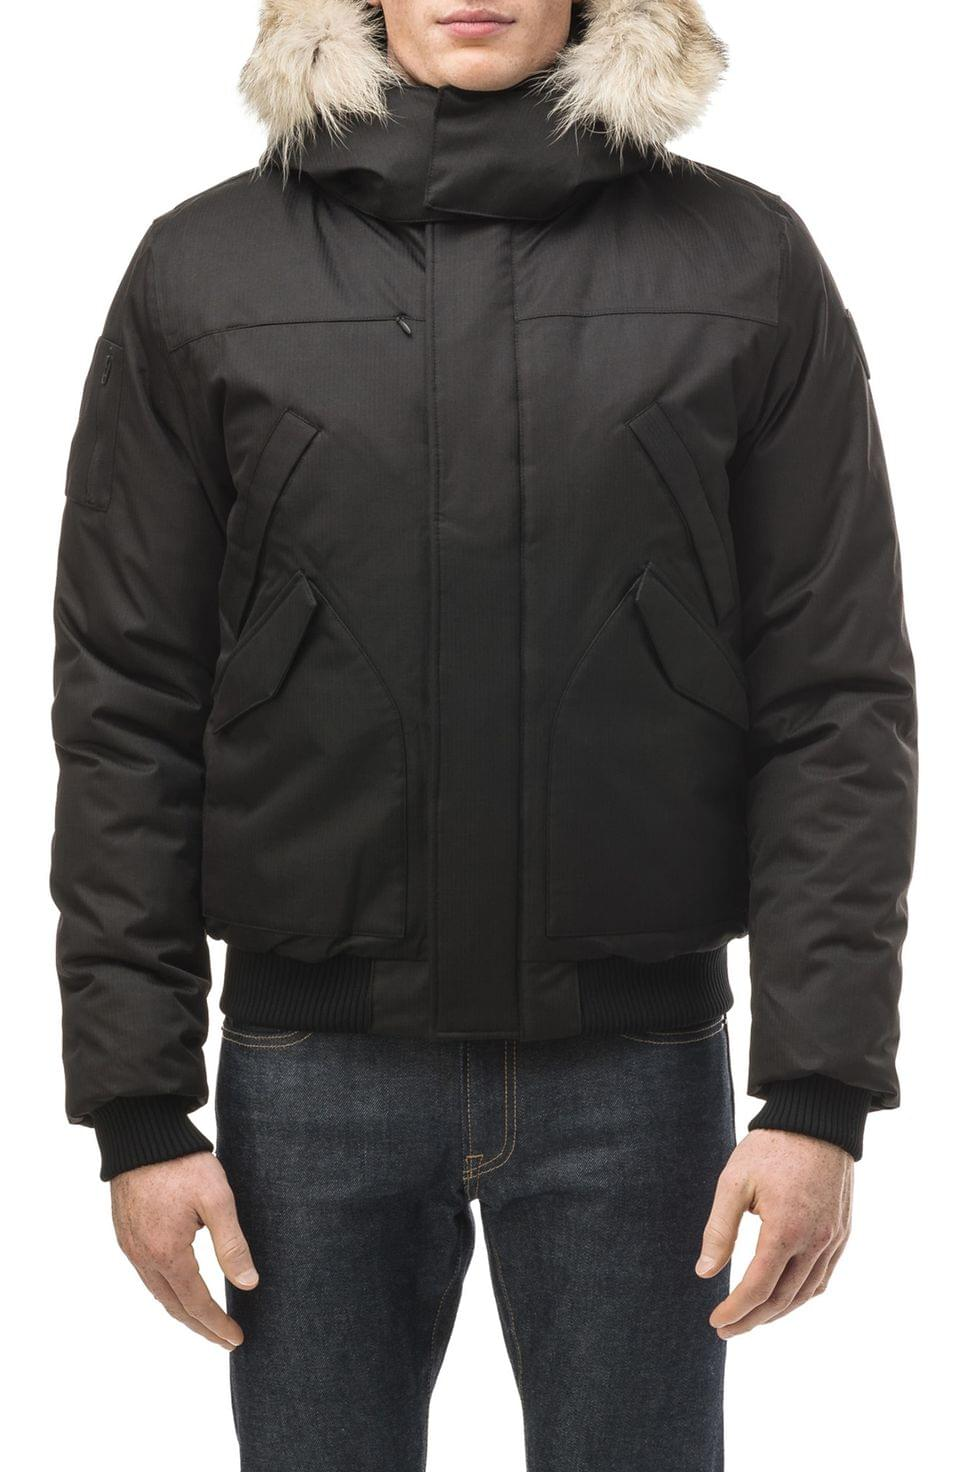 Men's nobis Dylan Windproof & Waterproof 650-Fill Power Down Bomber Jacket with Genuine Coyote Fur Trim